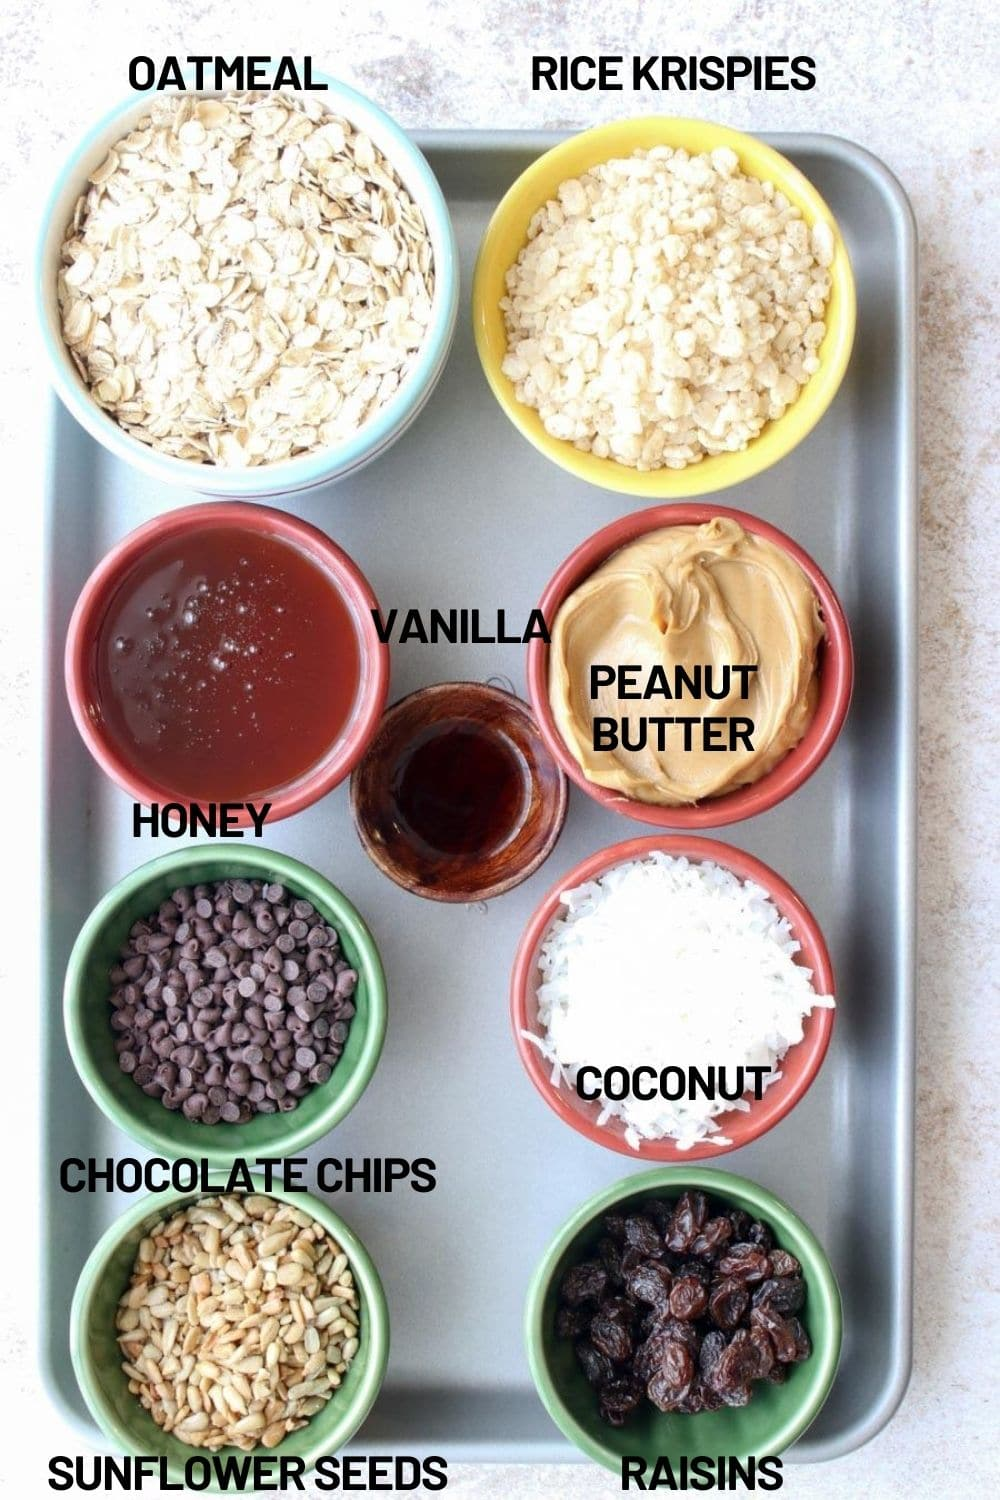 Cookie sheet with all of the ingredients needed to make the balls